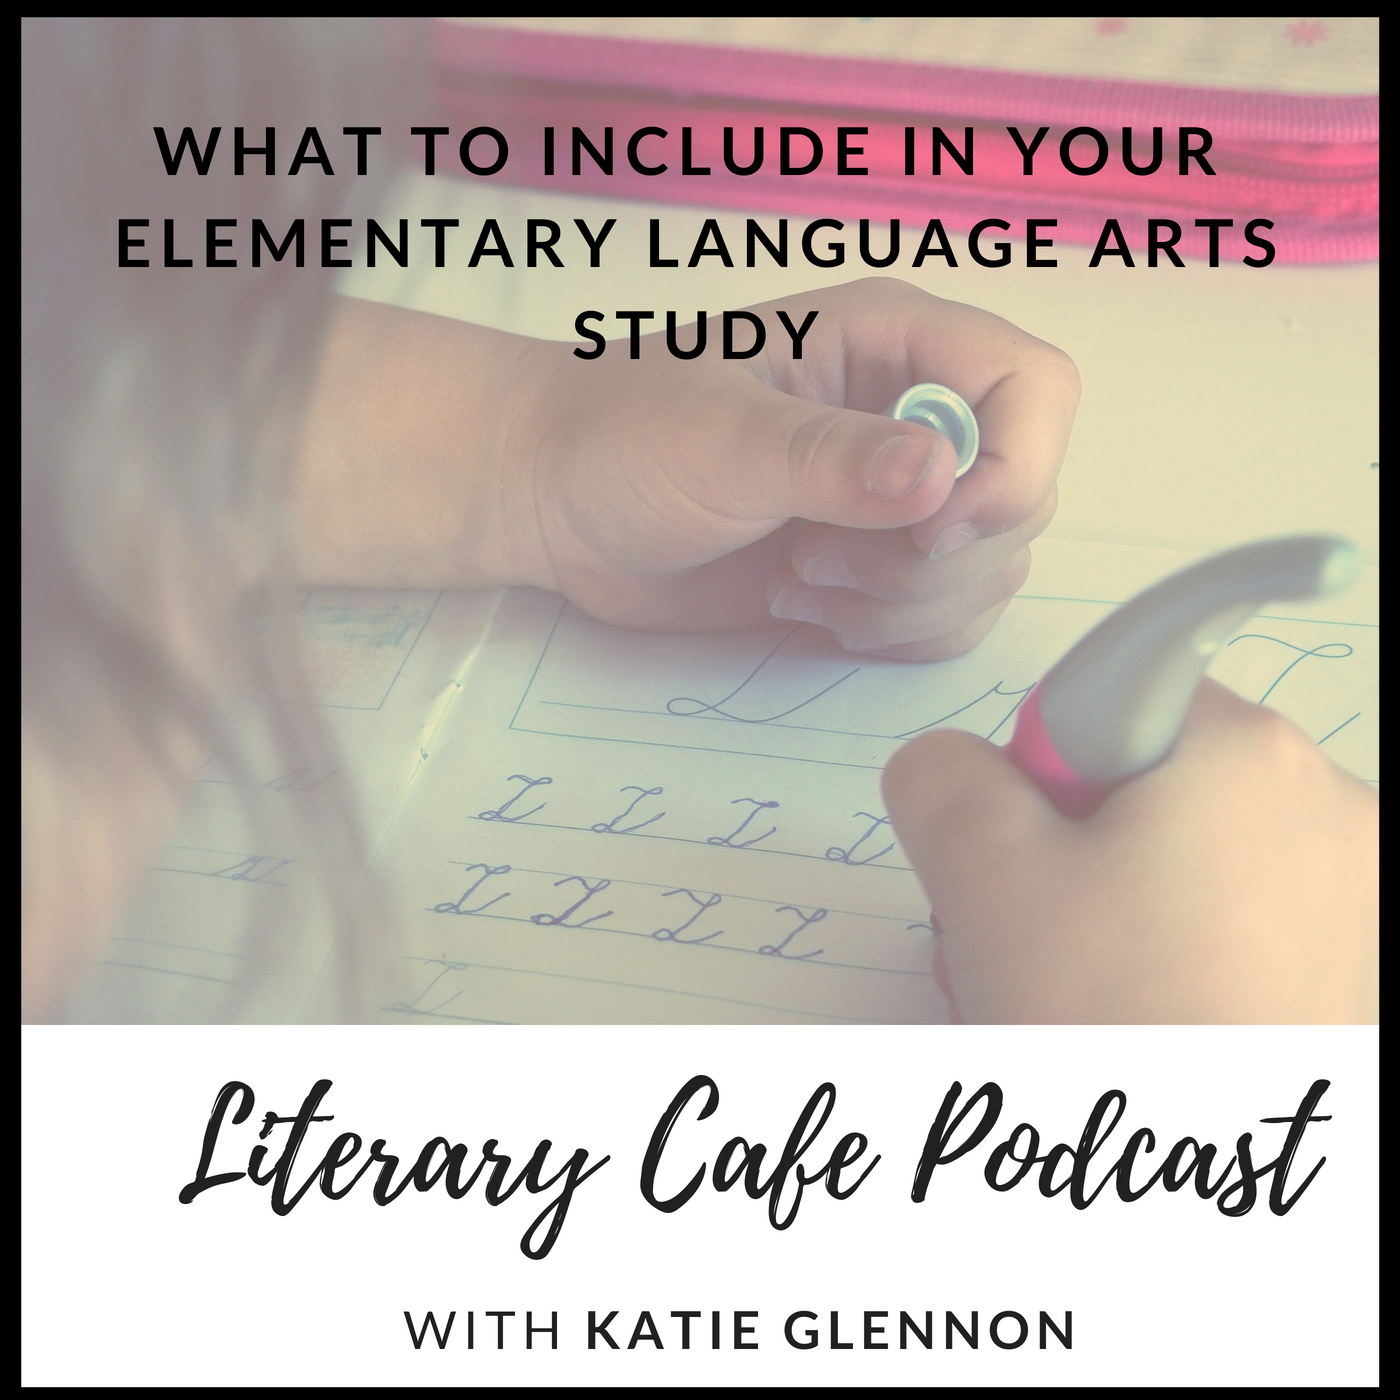 Literary Cafe Podcast What to Include in your Elementary Language Arts Study